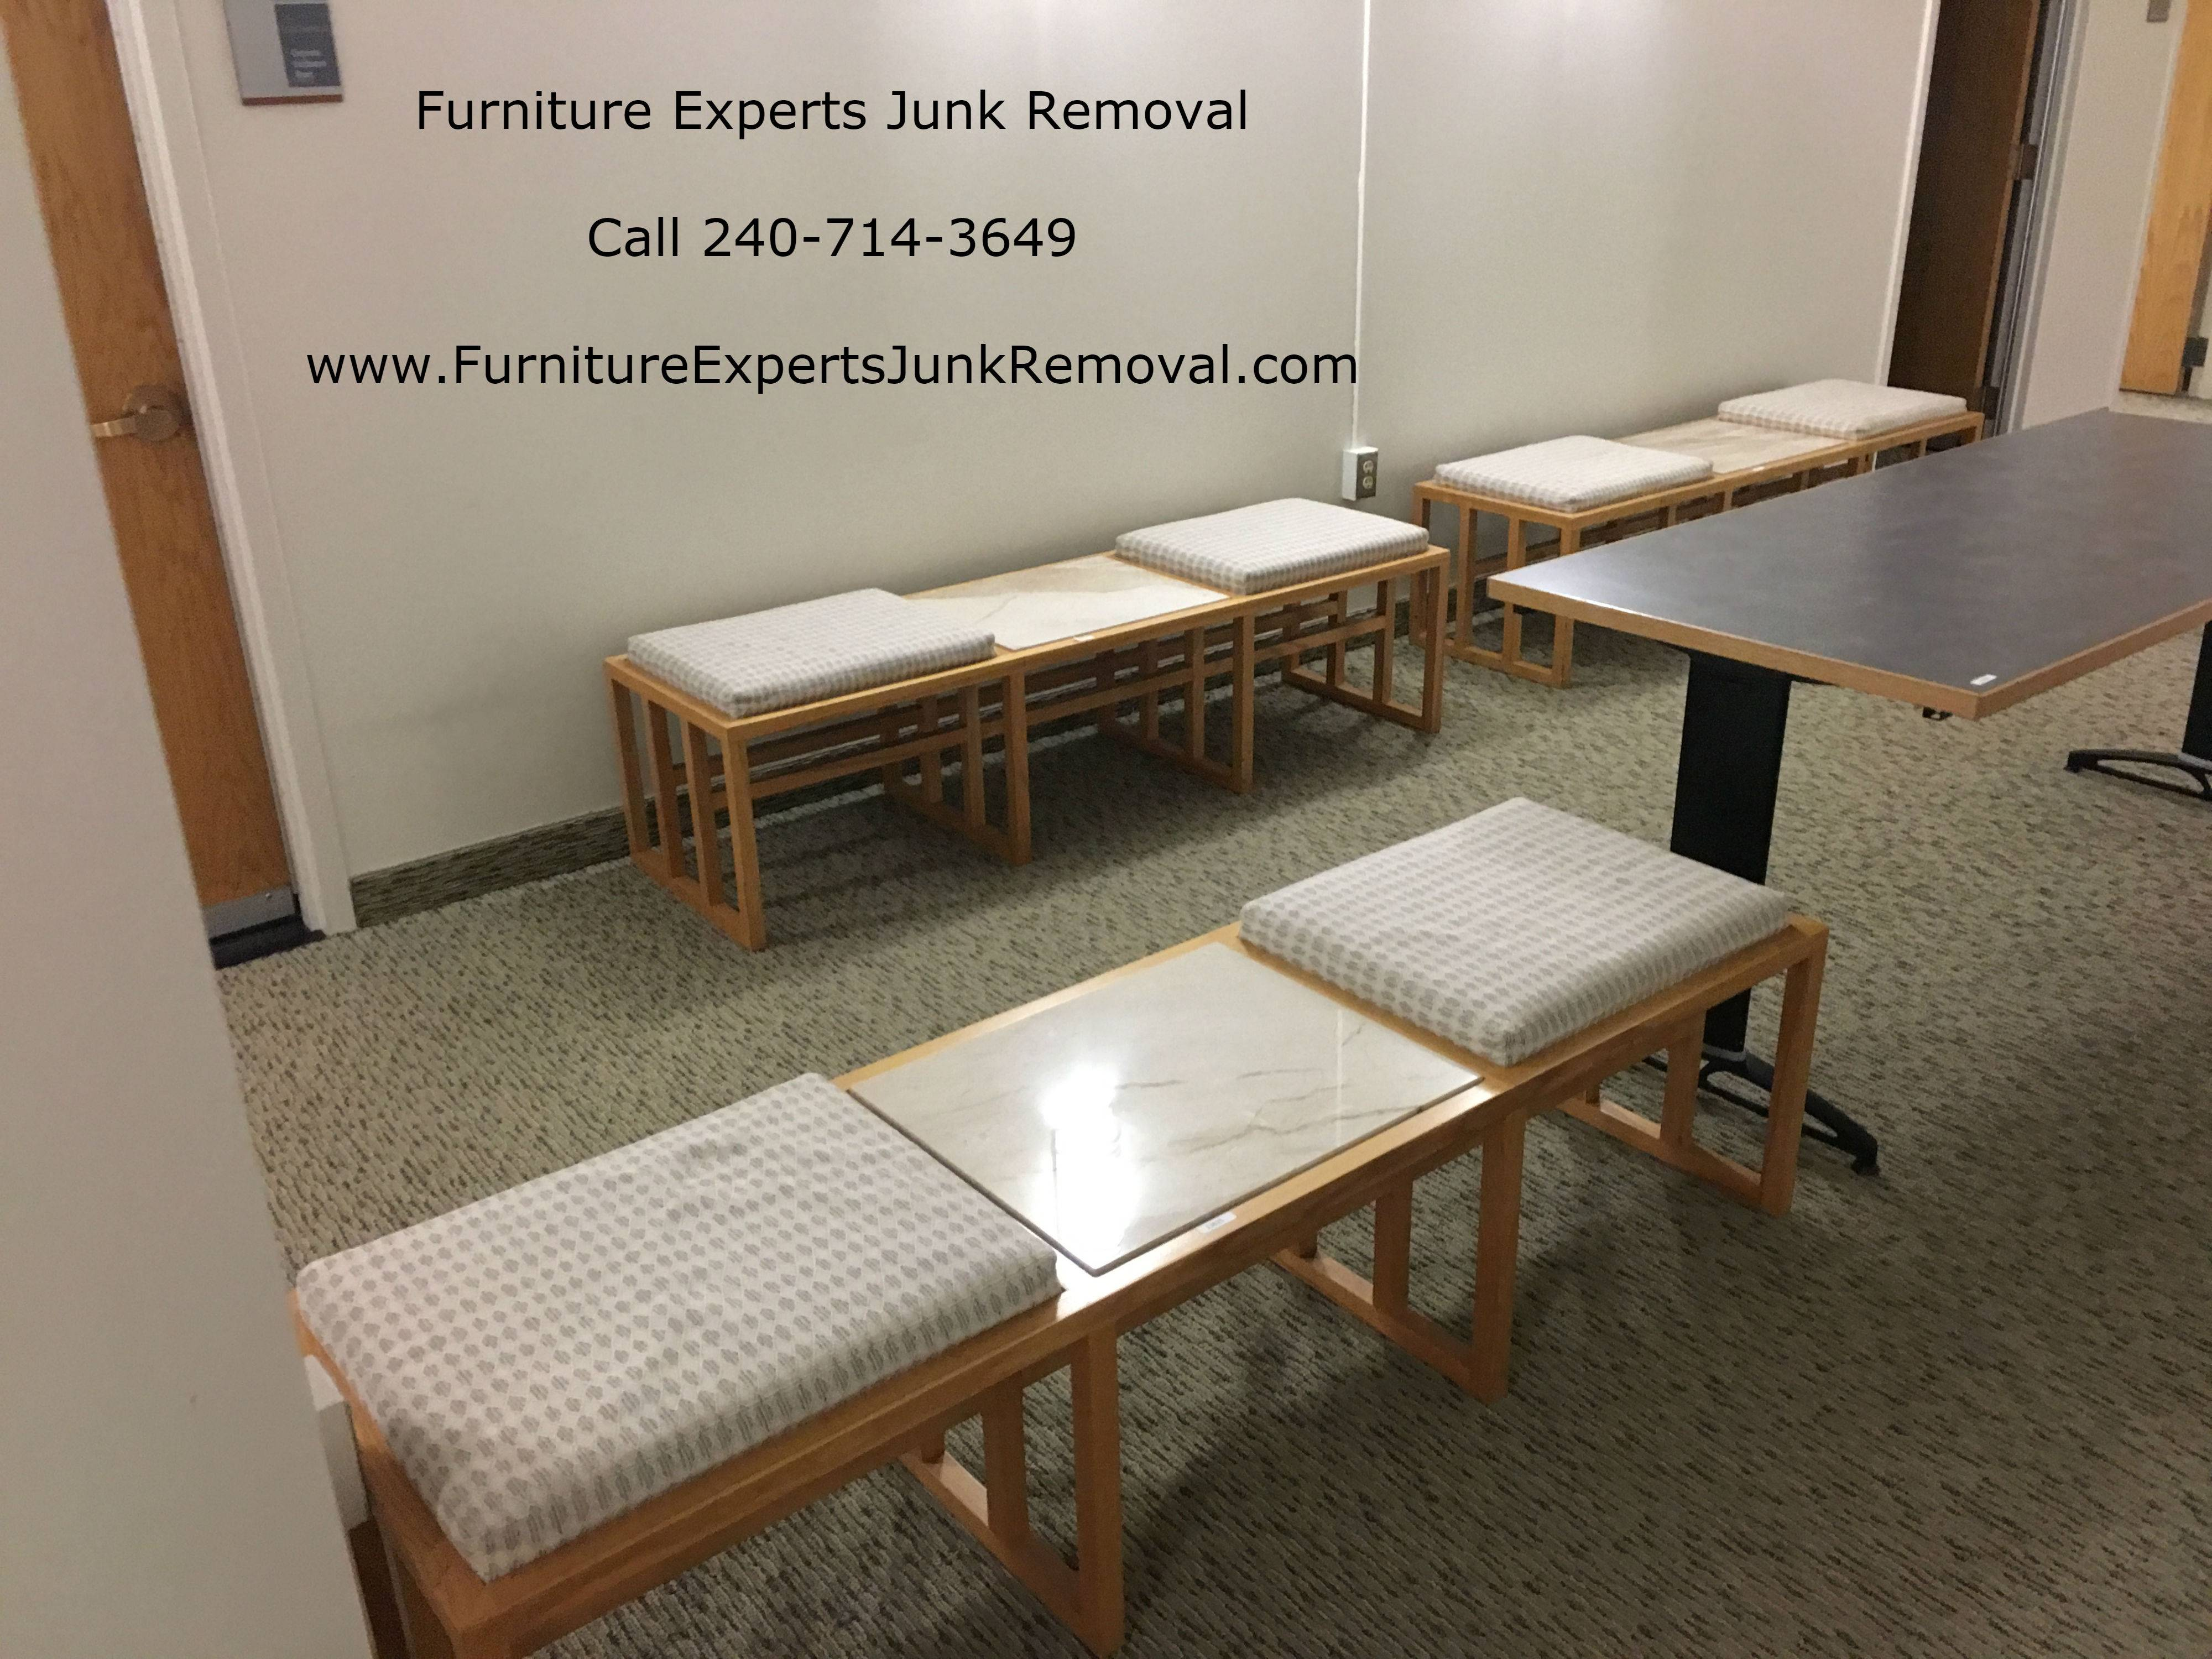 Junk office furniture removal in annandale VA